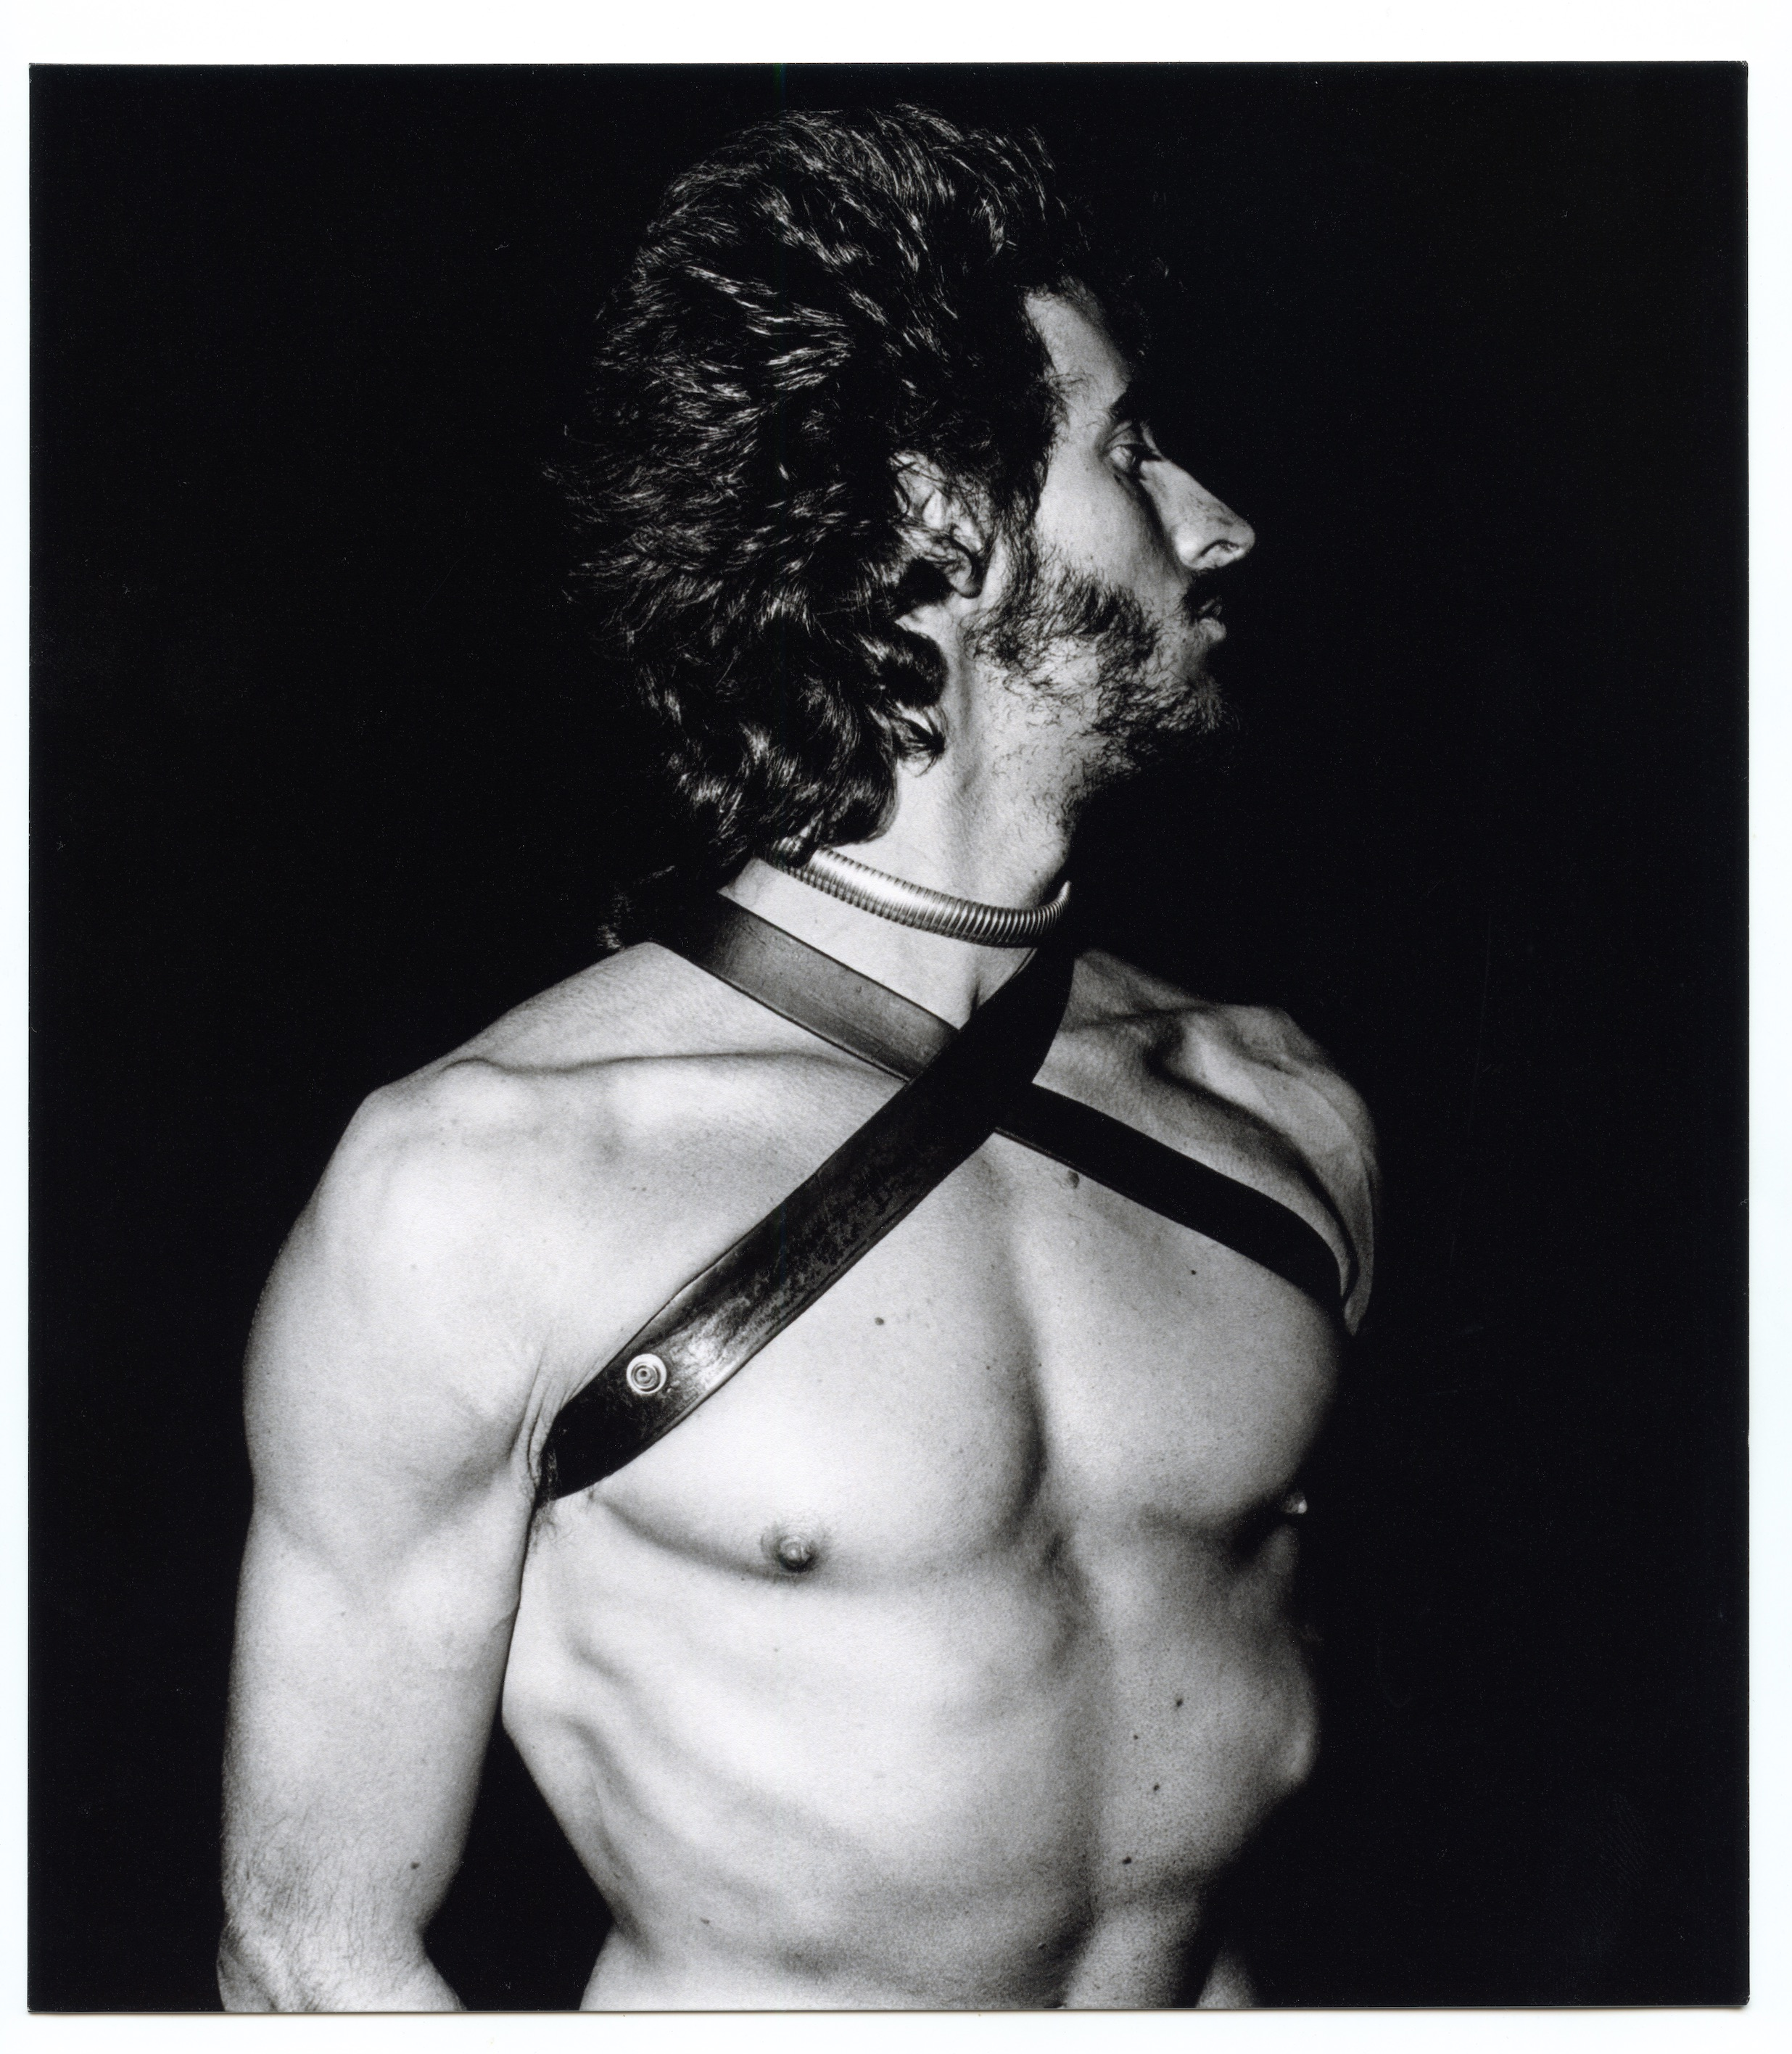 Image Credit: Peter Hujar. Man in Harness, 1973, Silver gelatin print, 8 x 10 inches, Courtesy of the Peter Hujar Estate.